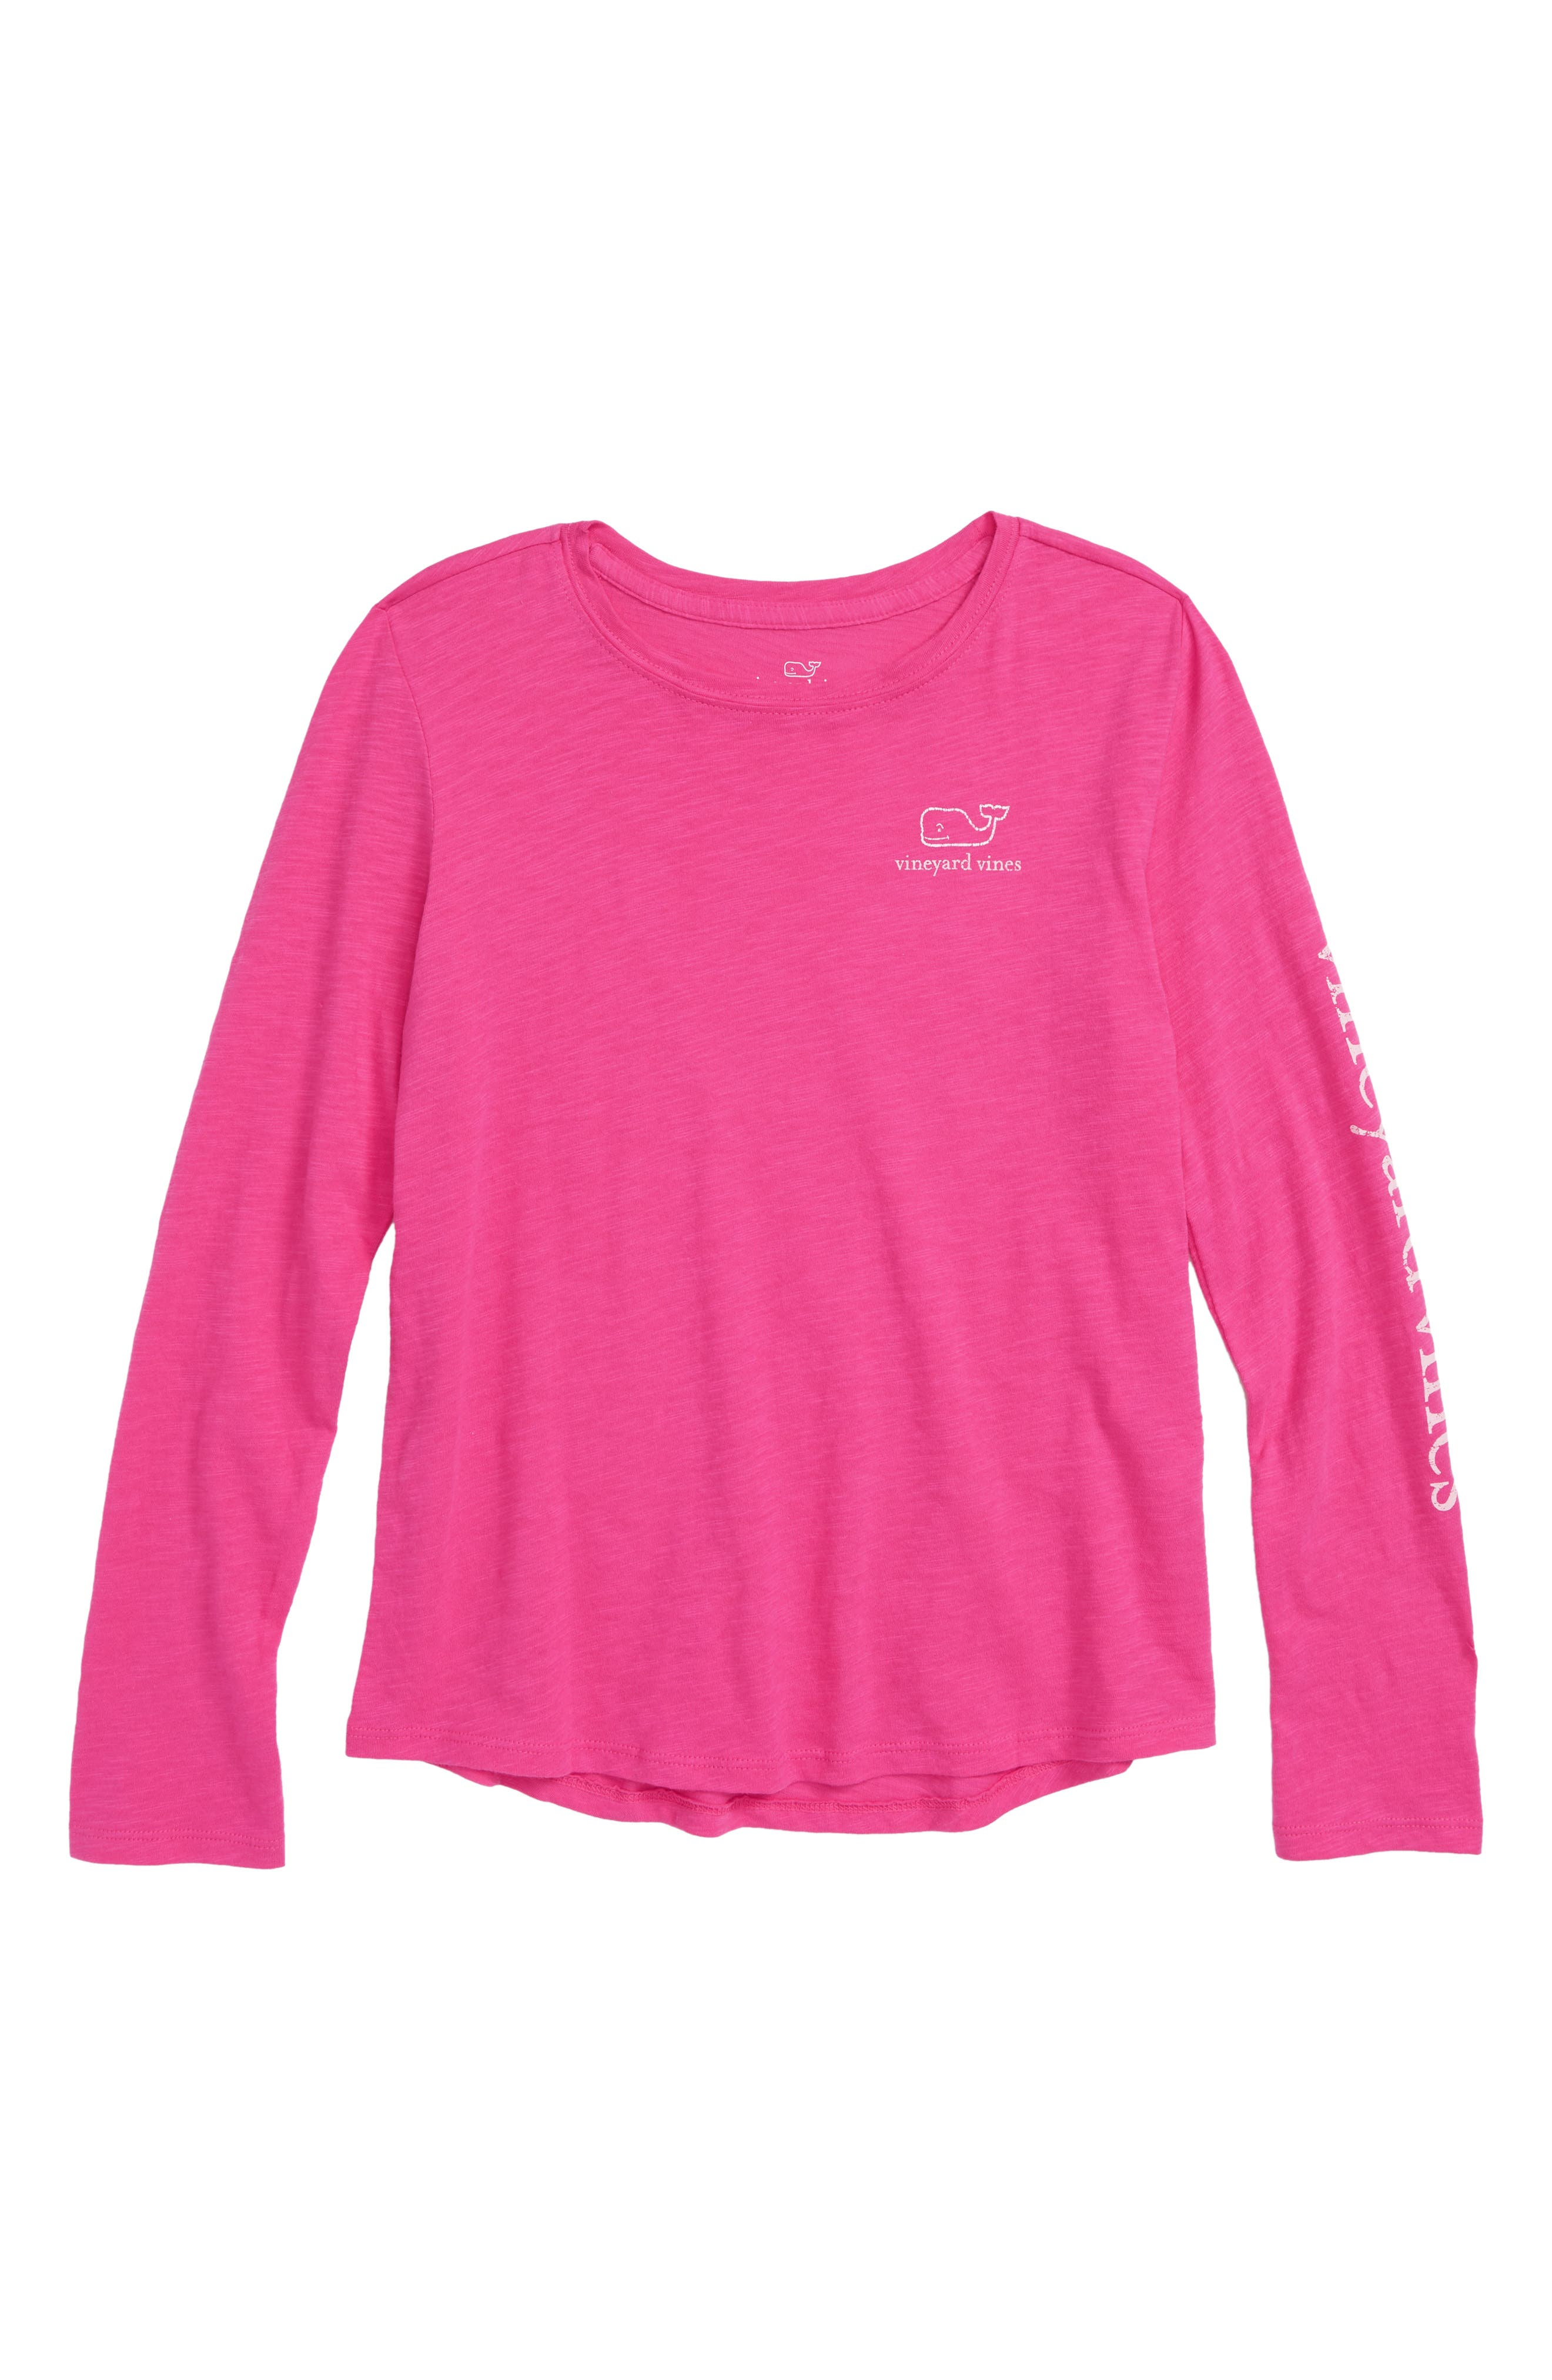 Whale Long Sleeve Tee,                             Main thumbnail 1, color,                             RHODODENDRON 2